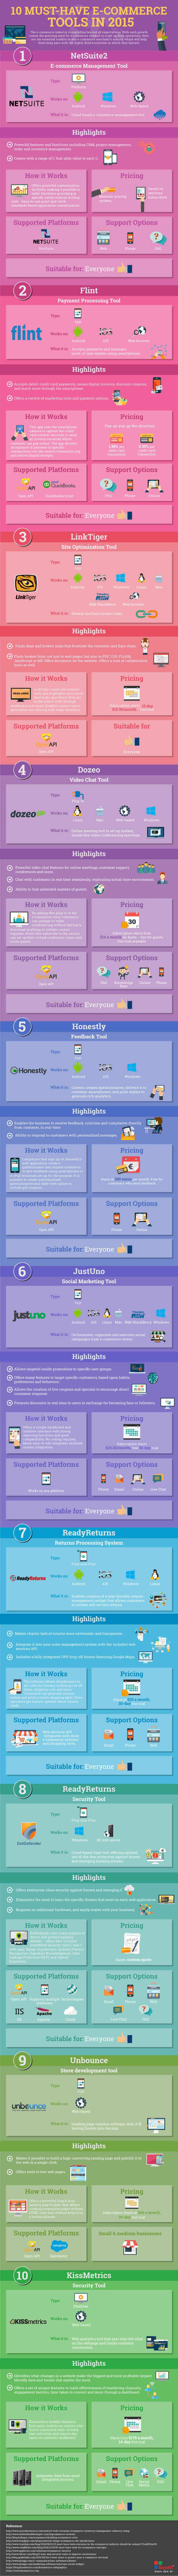 10 Must Have E-commerce Tools [Infographic]